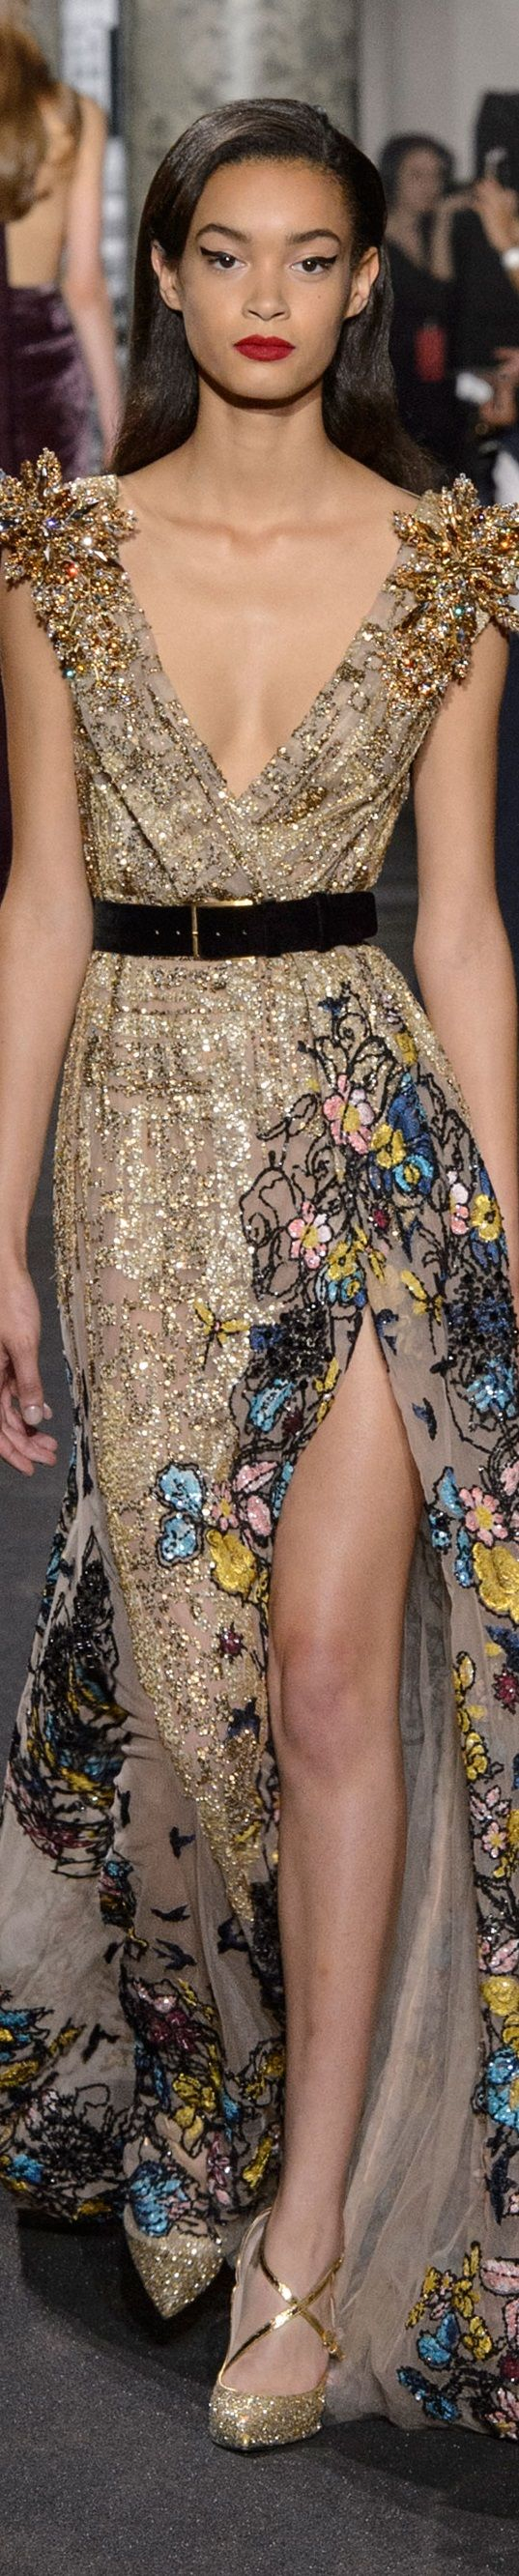 Elie Sabb fall 2016 couture